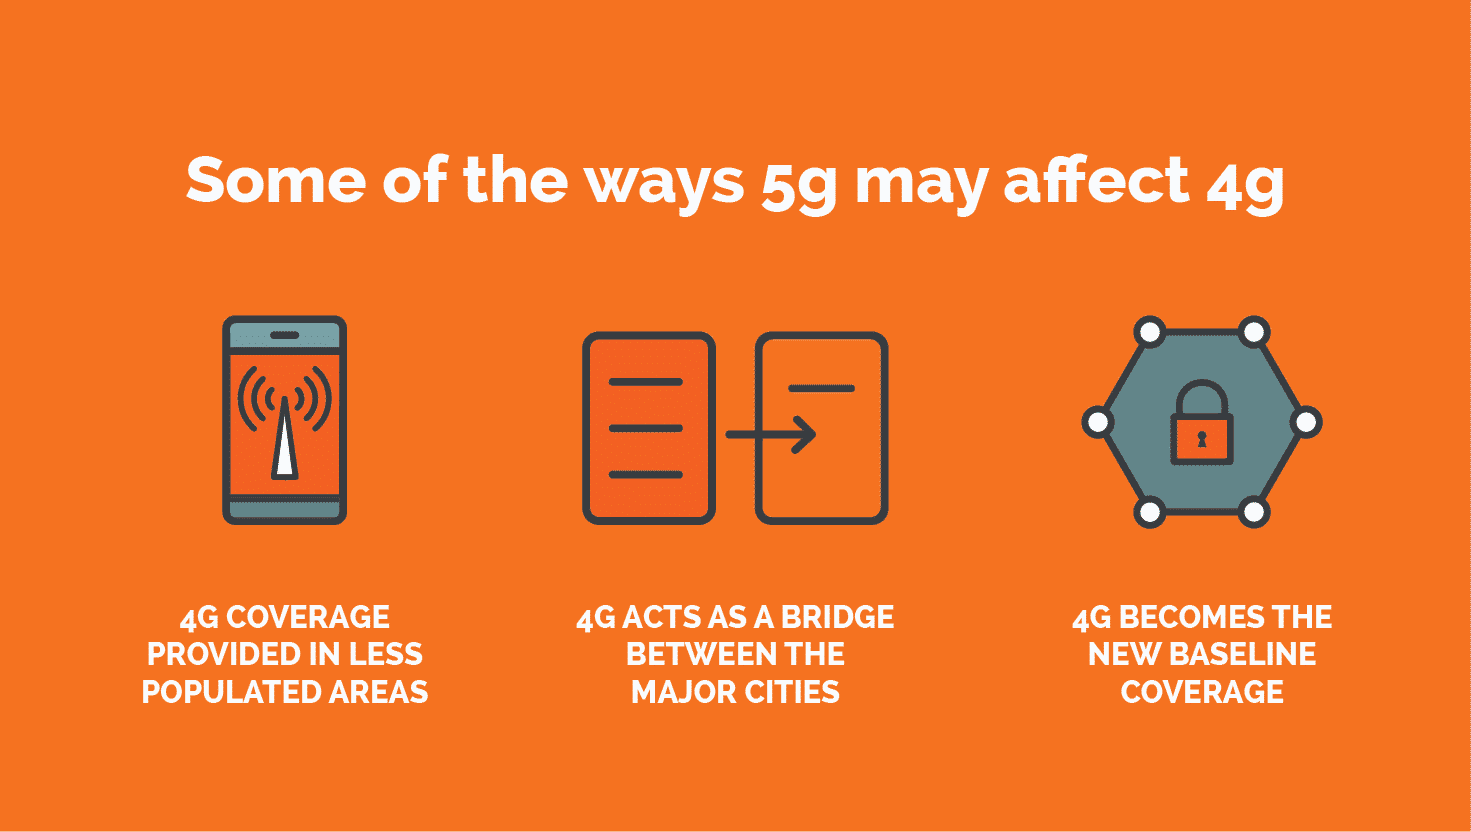 5G and 4G